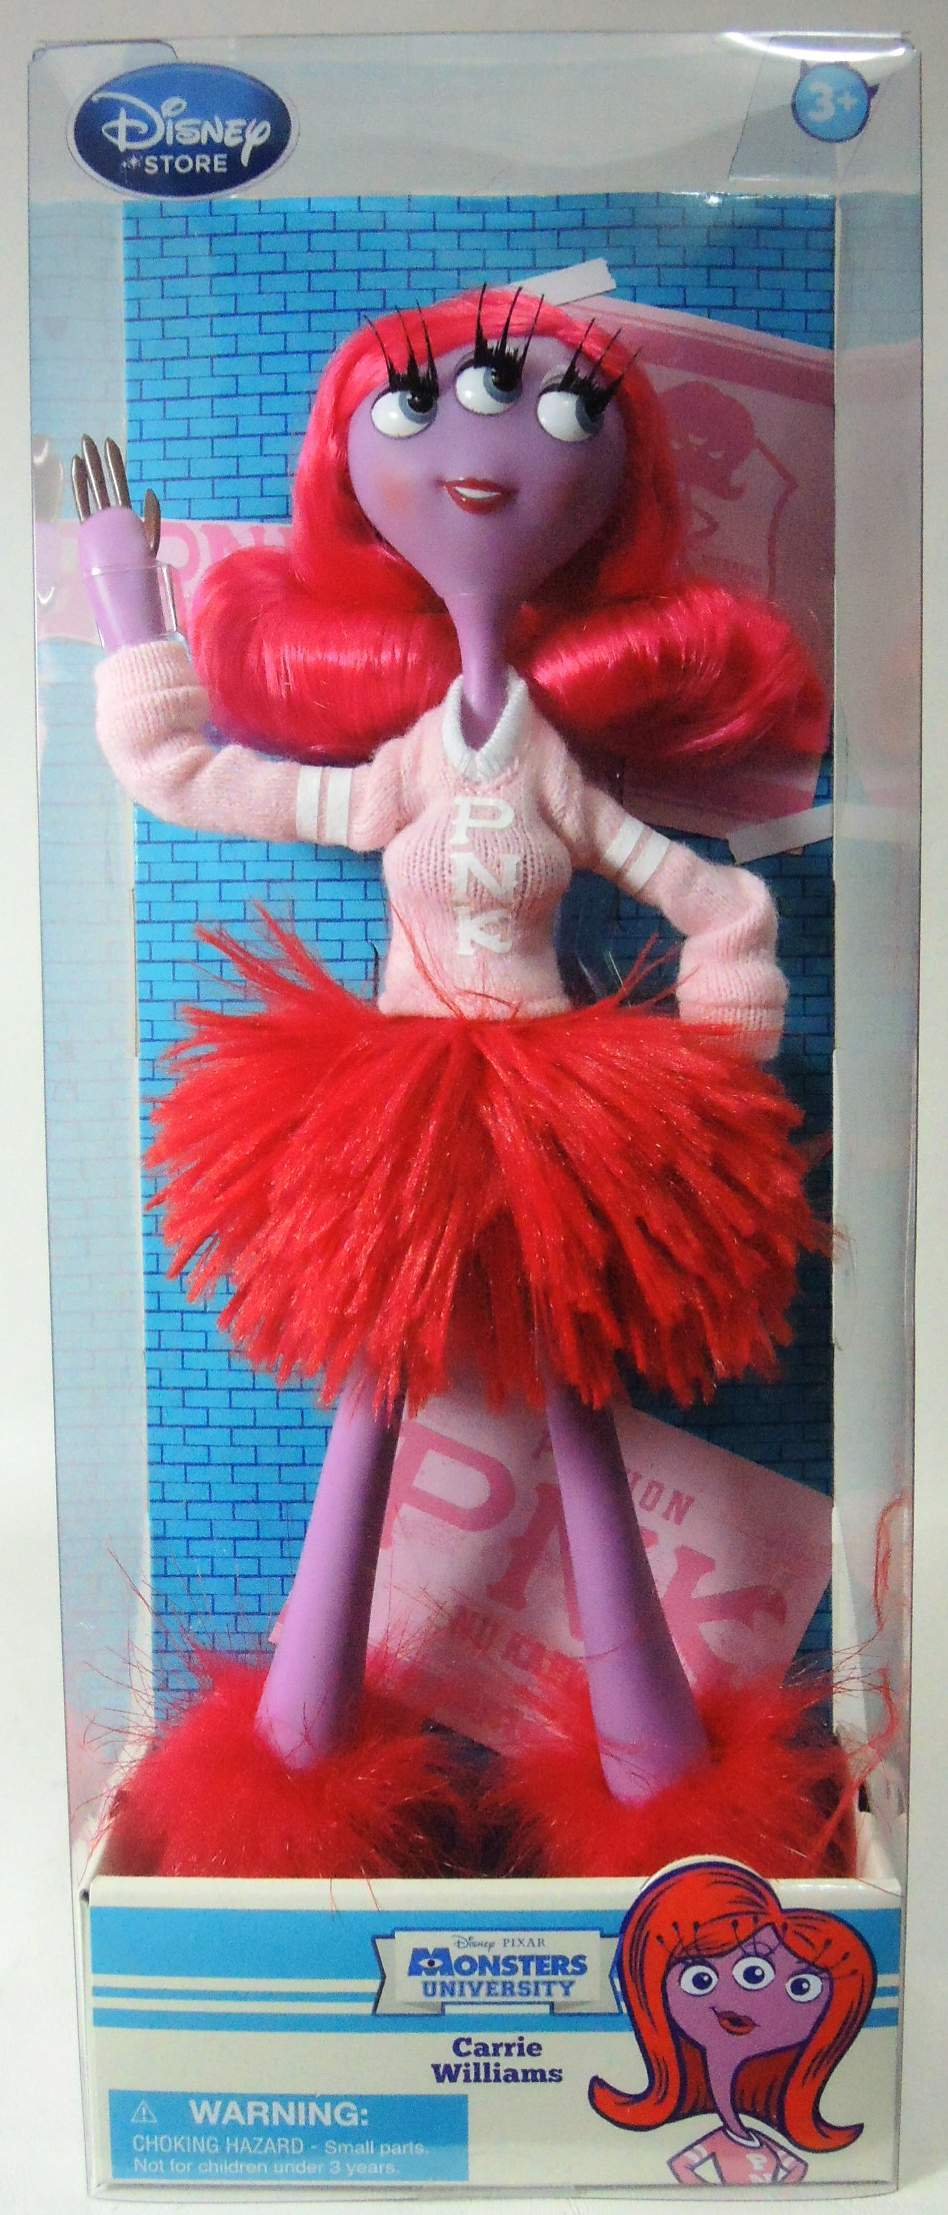 Disney Pixar Monsters University 11 inch doll Carrie Williams - 6903-6917CCCHTV